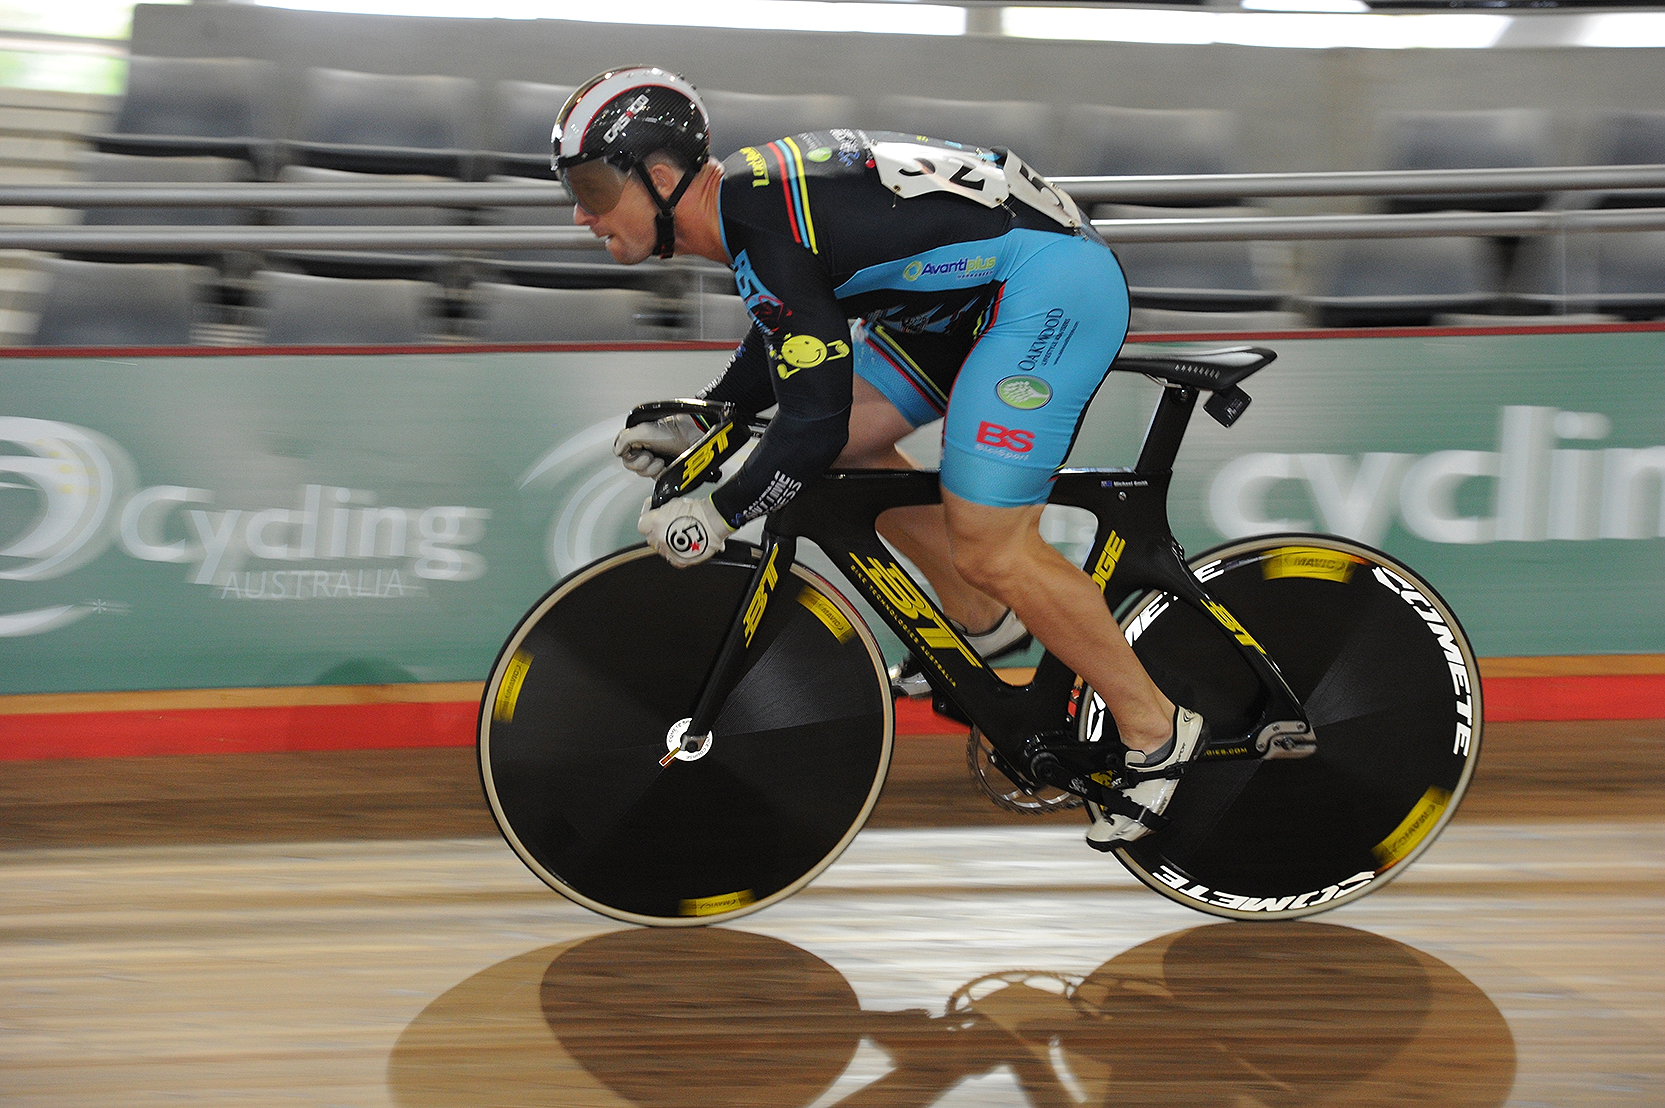 Congratulations to Mike Smith (BiciSport M4) took Sprint Gold at the World Masters Track Championships in Manchester. Mike won the Sprint Final 2-1 then took Bronze in the Team Sprint.